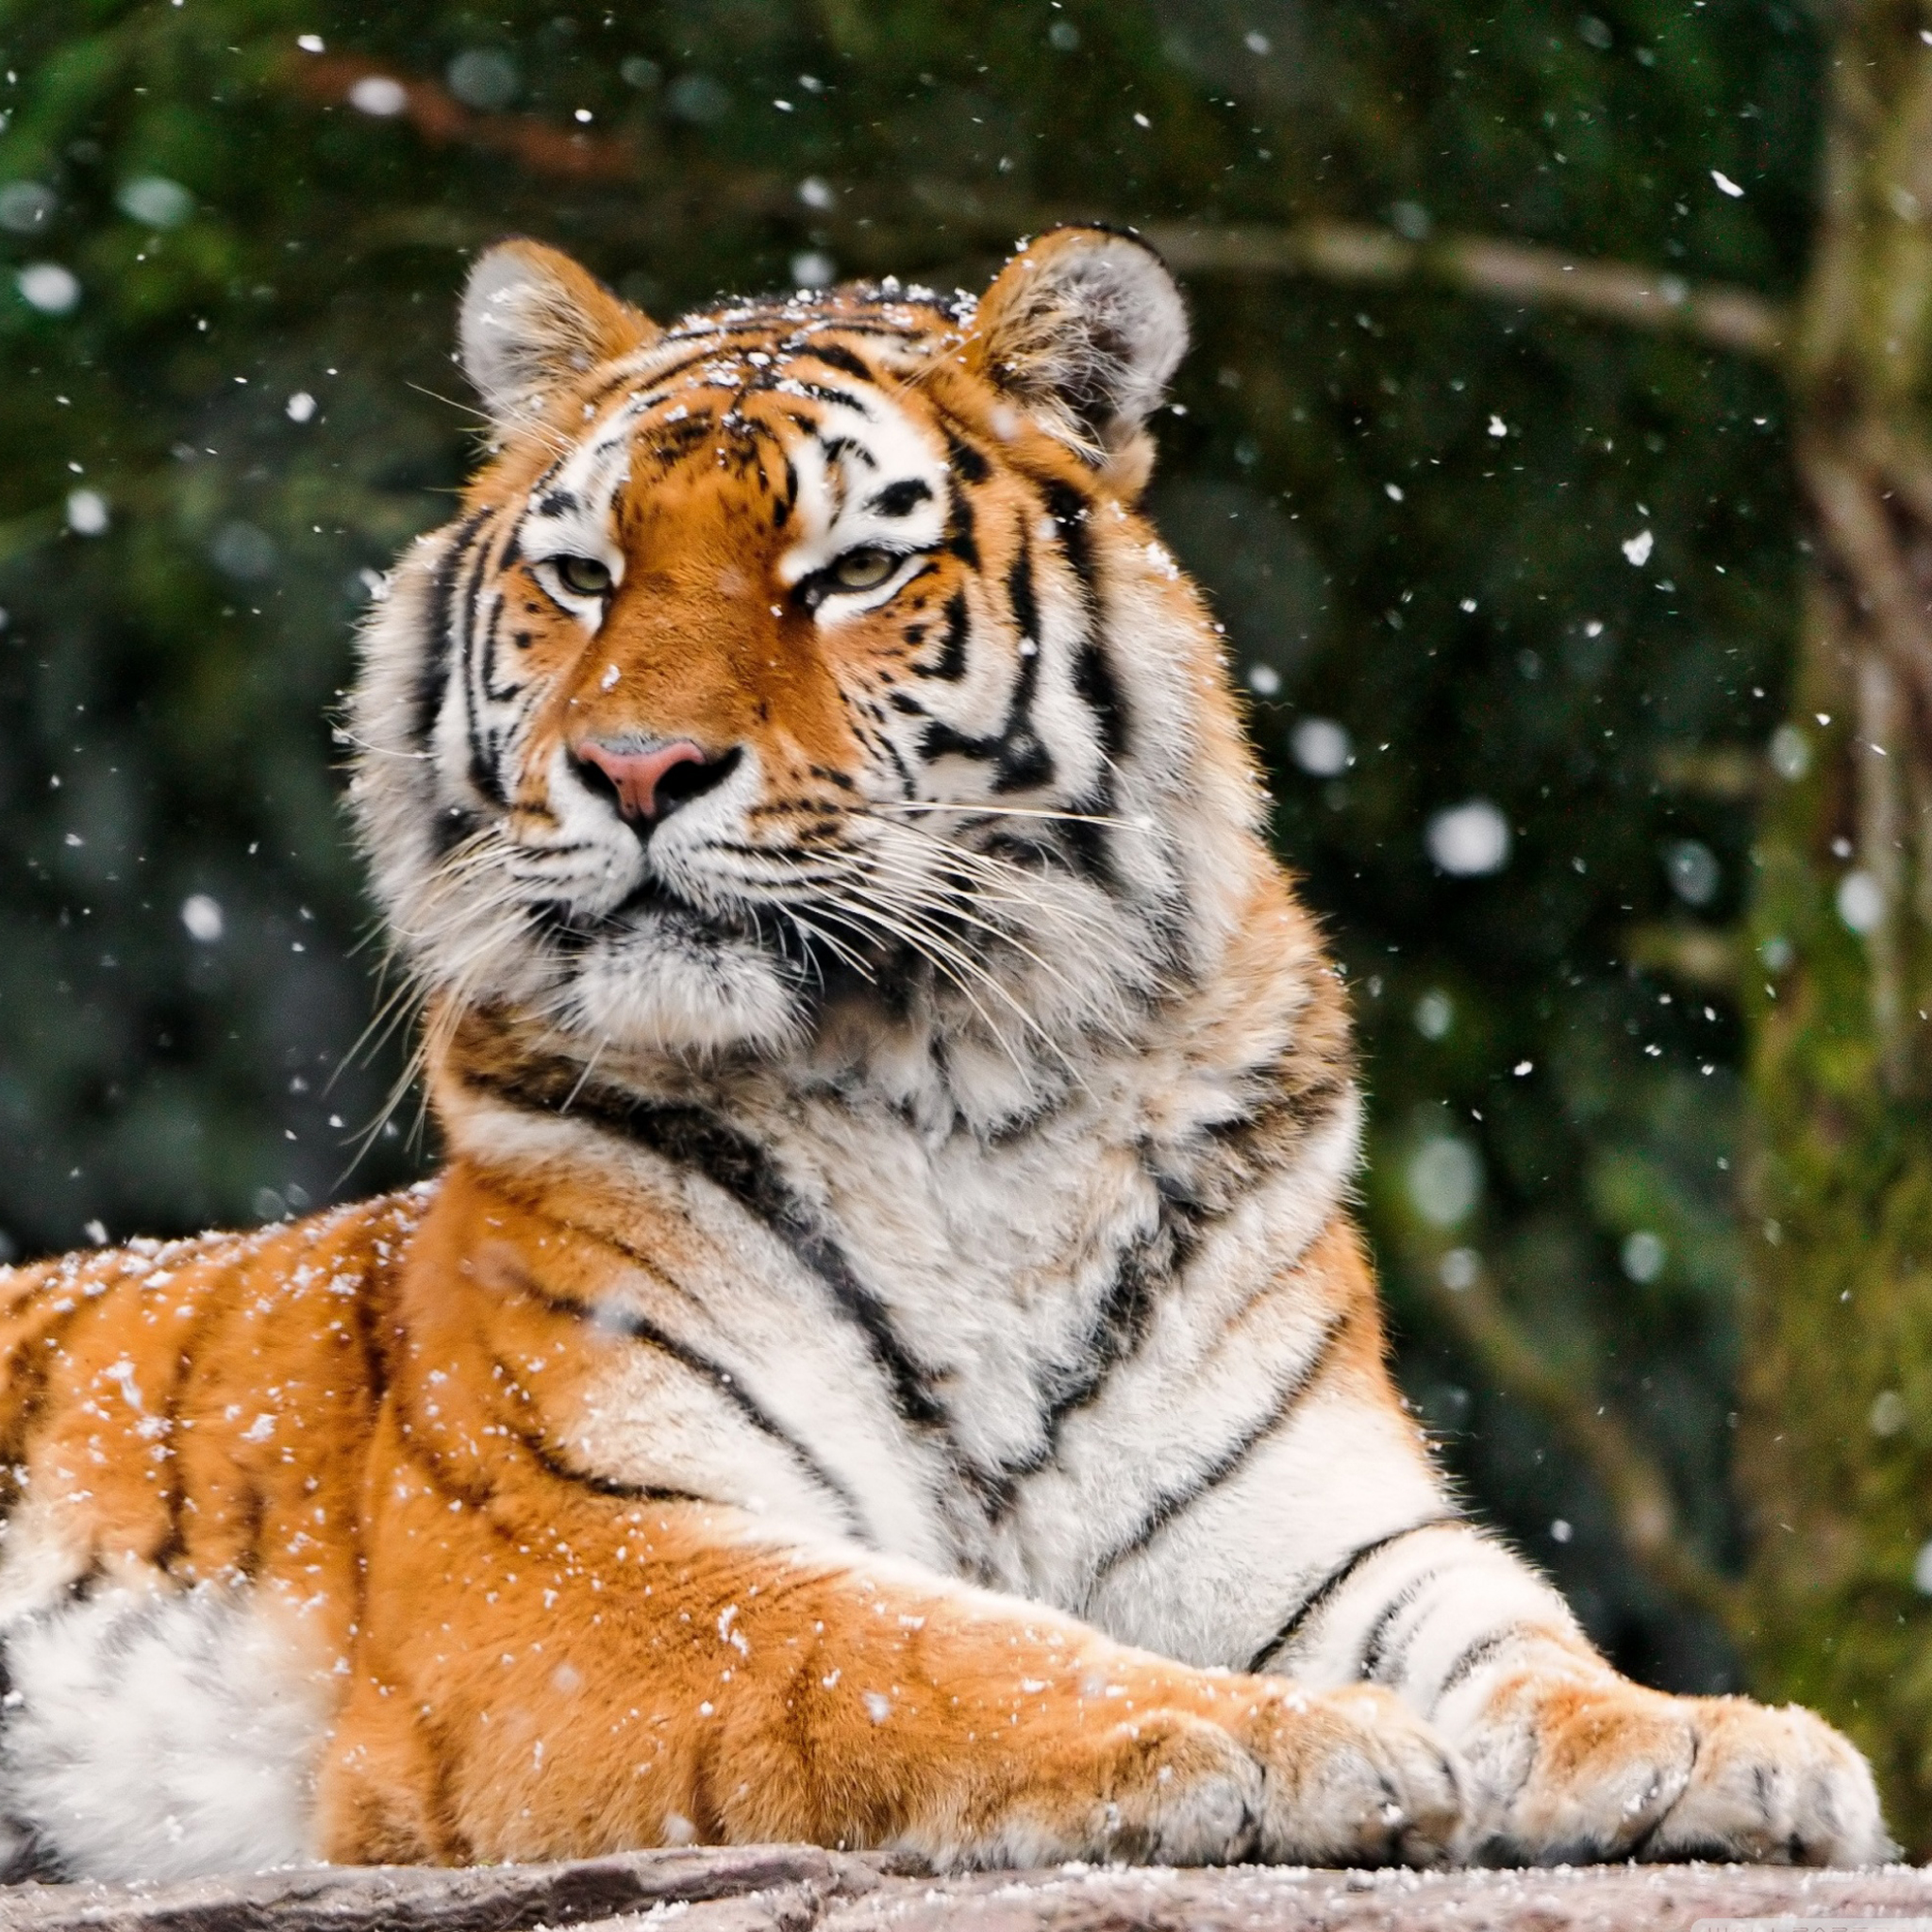 Tiger in the Snow 3Wallpapers iPad Tiger in the Snow   iPad